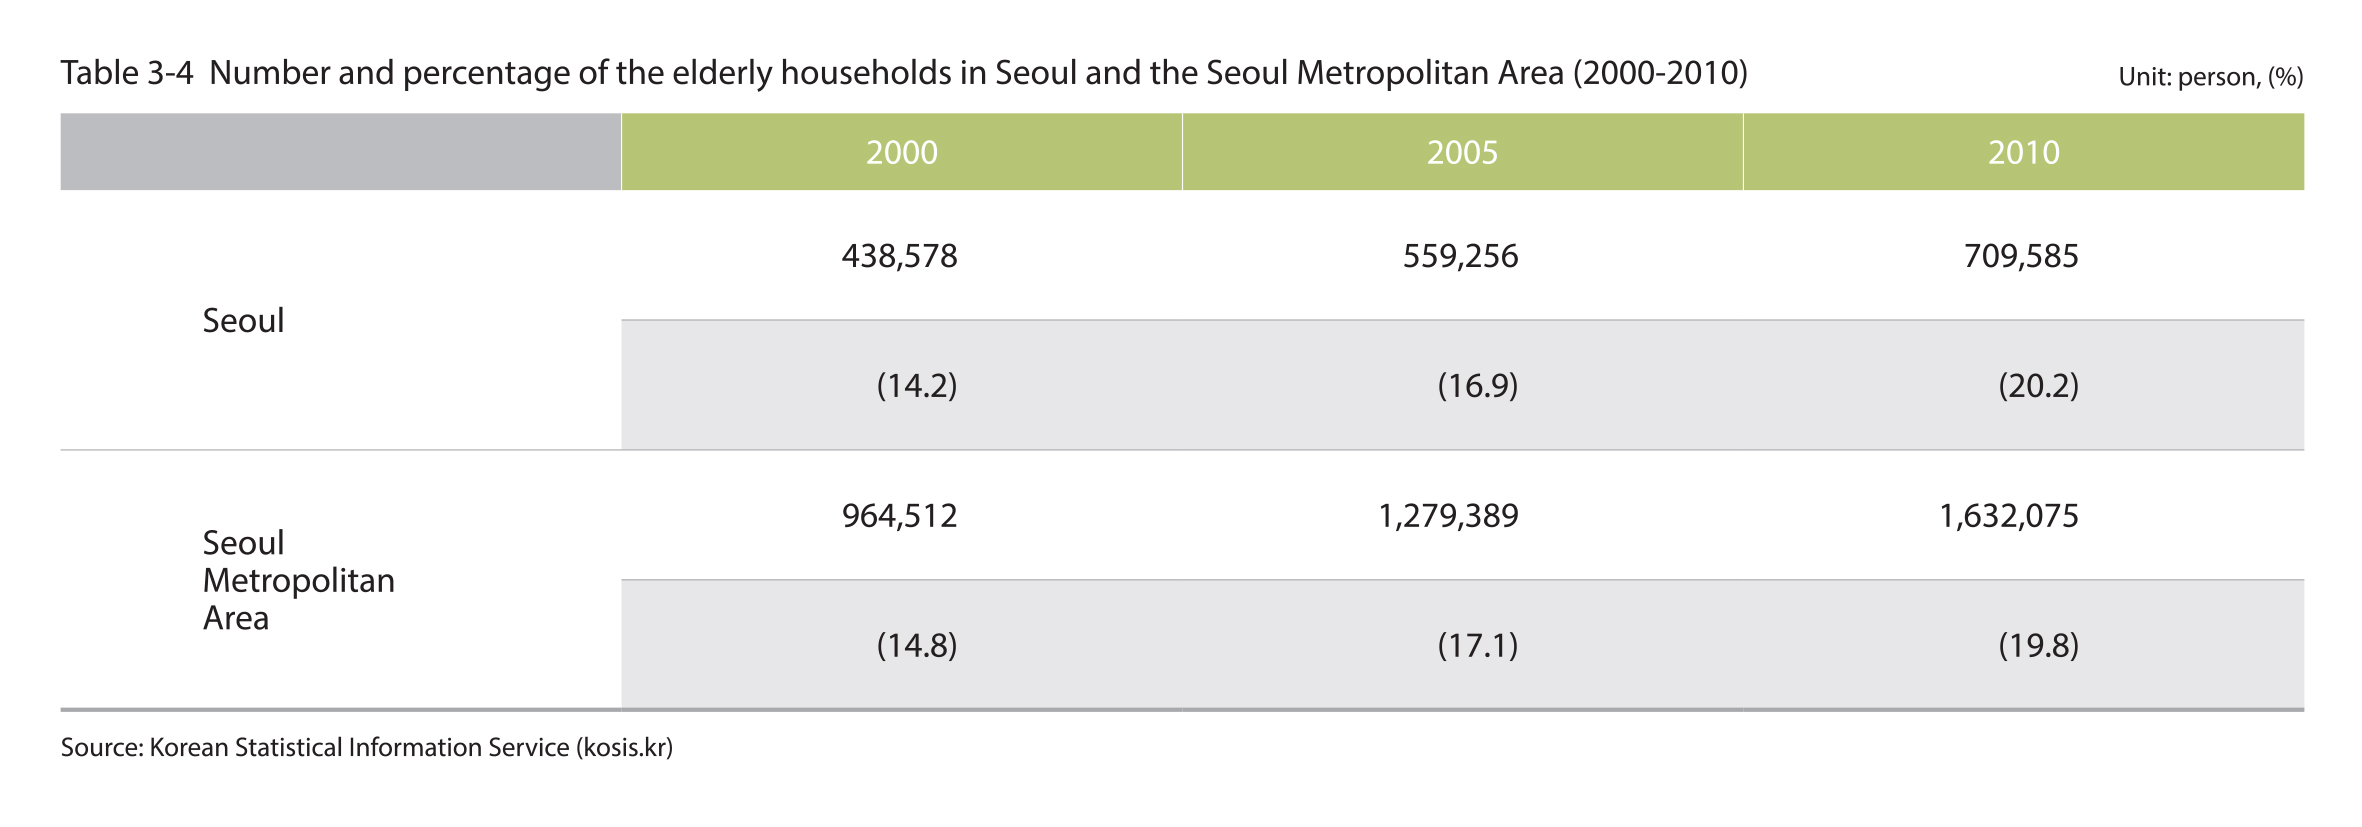 Number and percentage of the elderly household in Seoul and the Seoul Metropolitan Area (2000-2010)